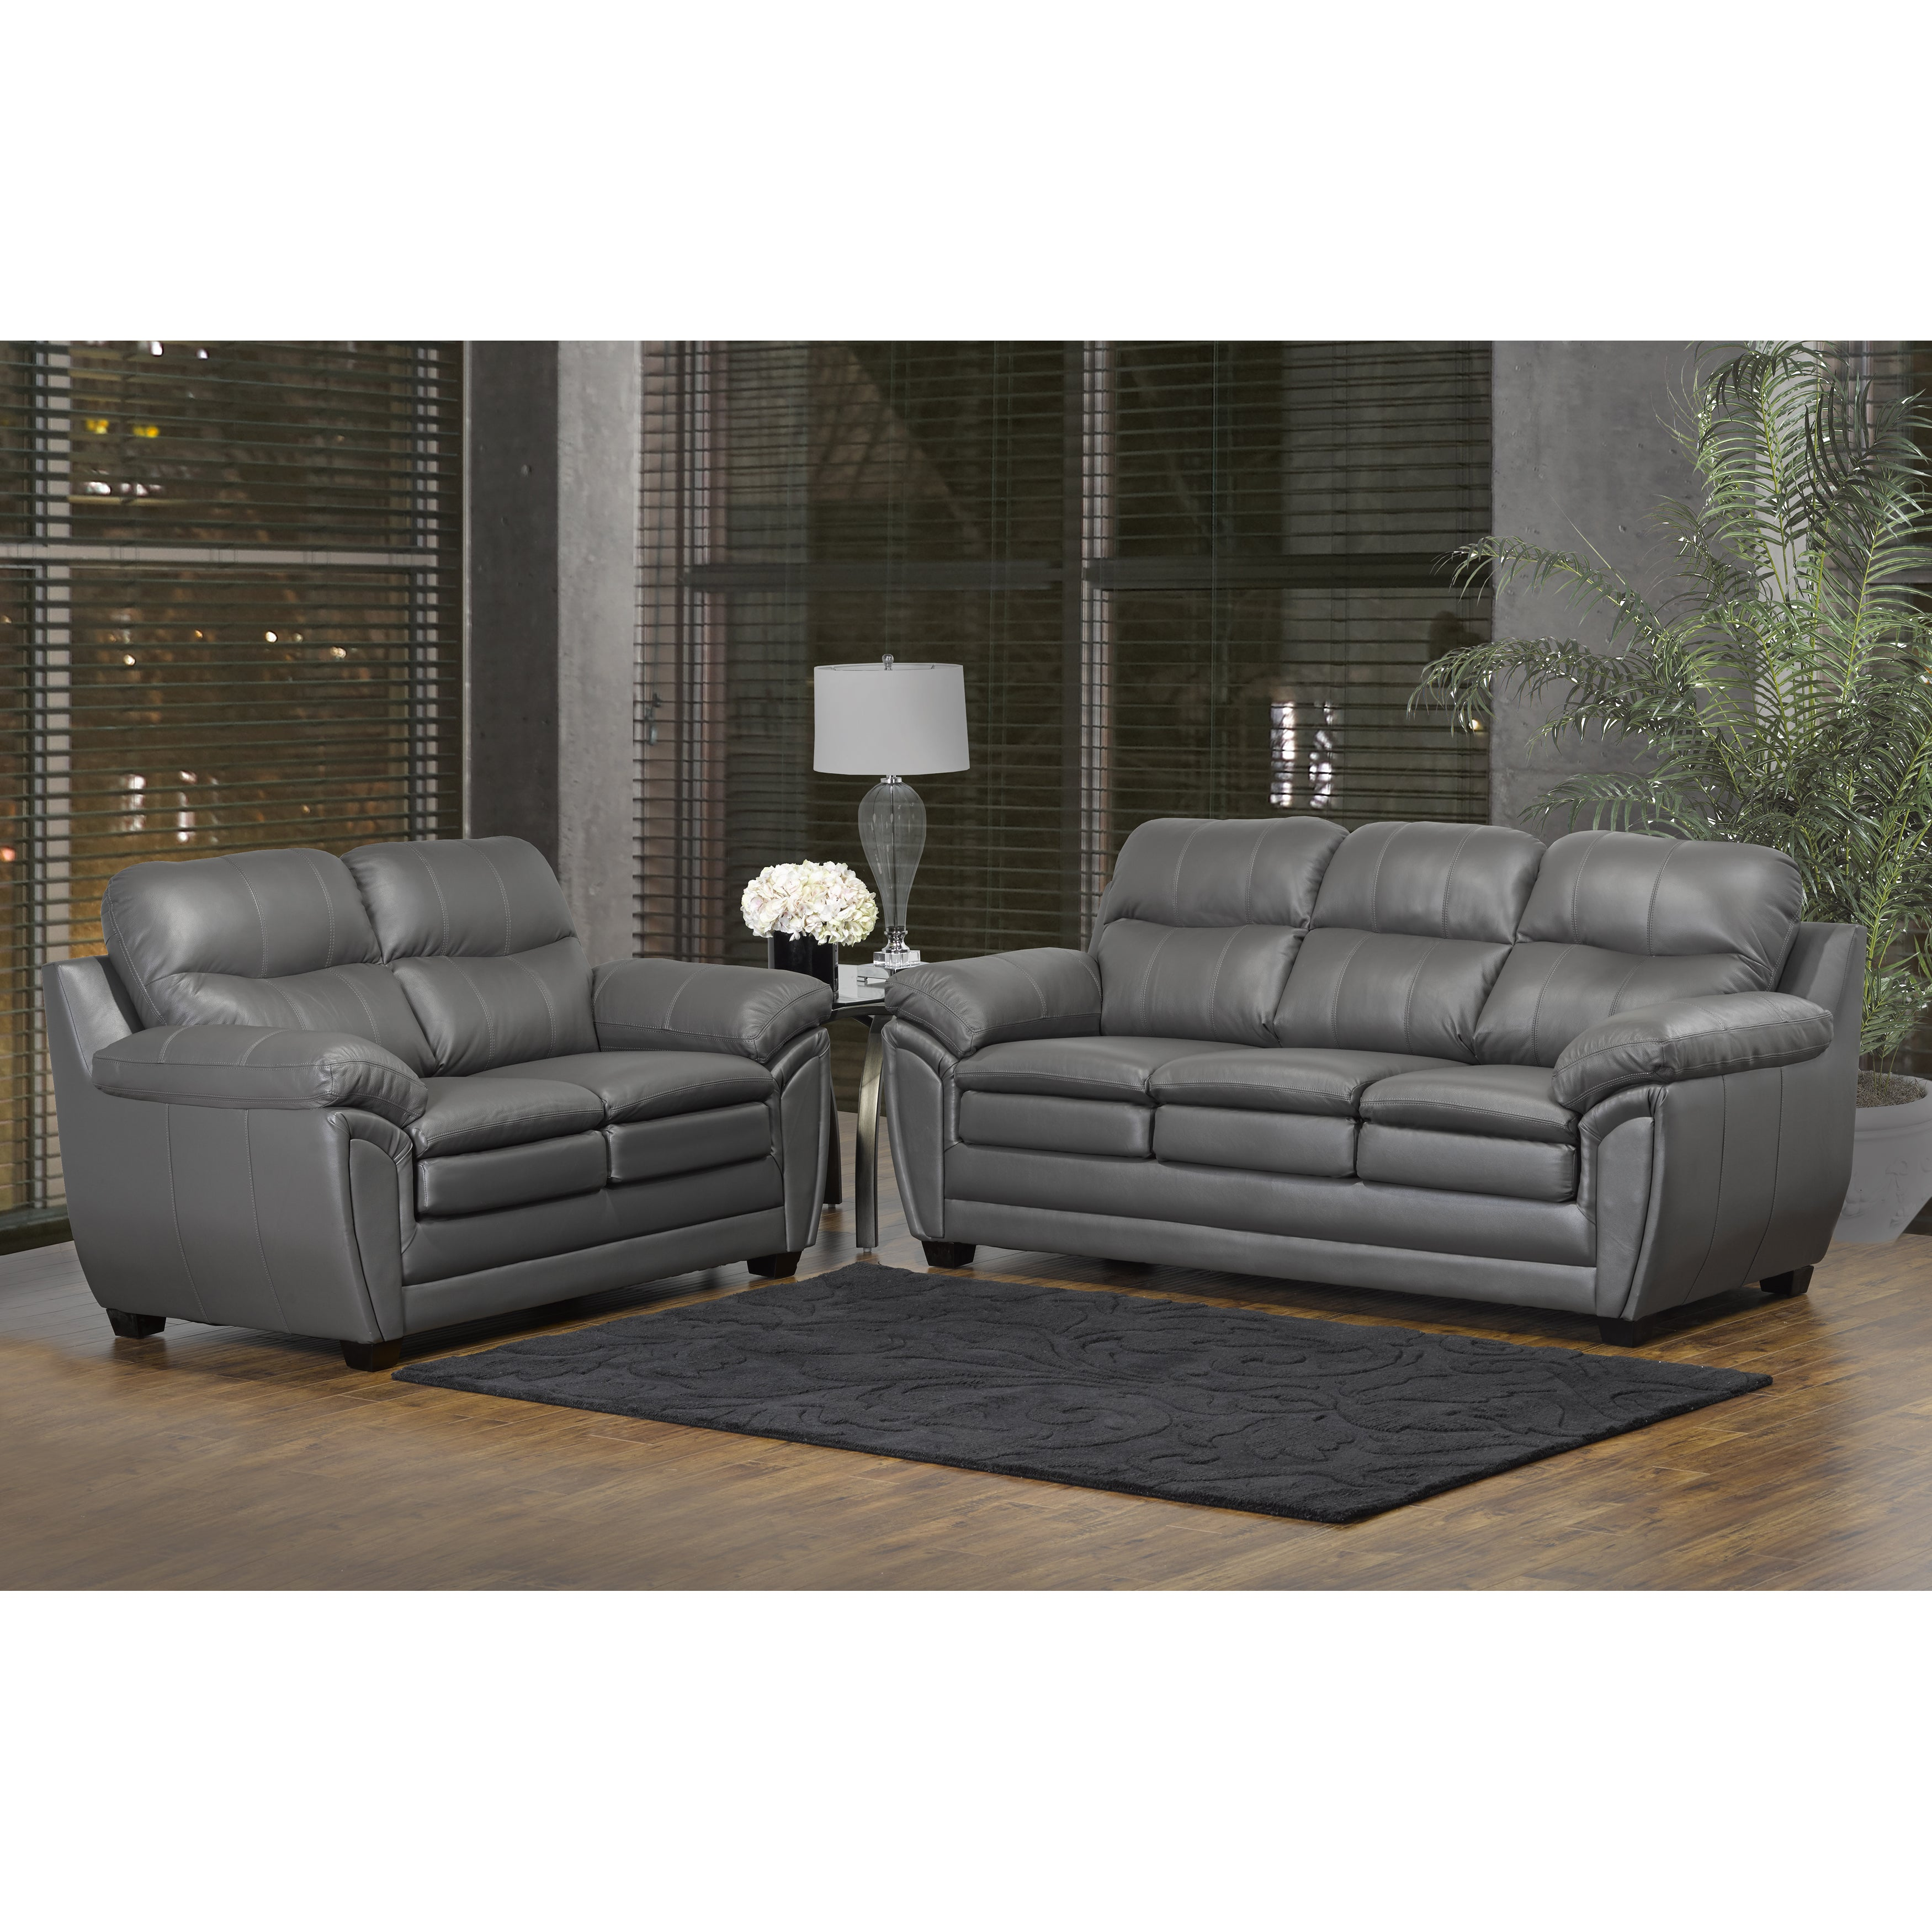 Marcus Grey Top Grain Leather Sofa Loveseat Set 38 X 86 X 36 On Sale Overstock 13251187